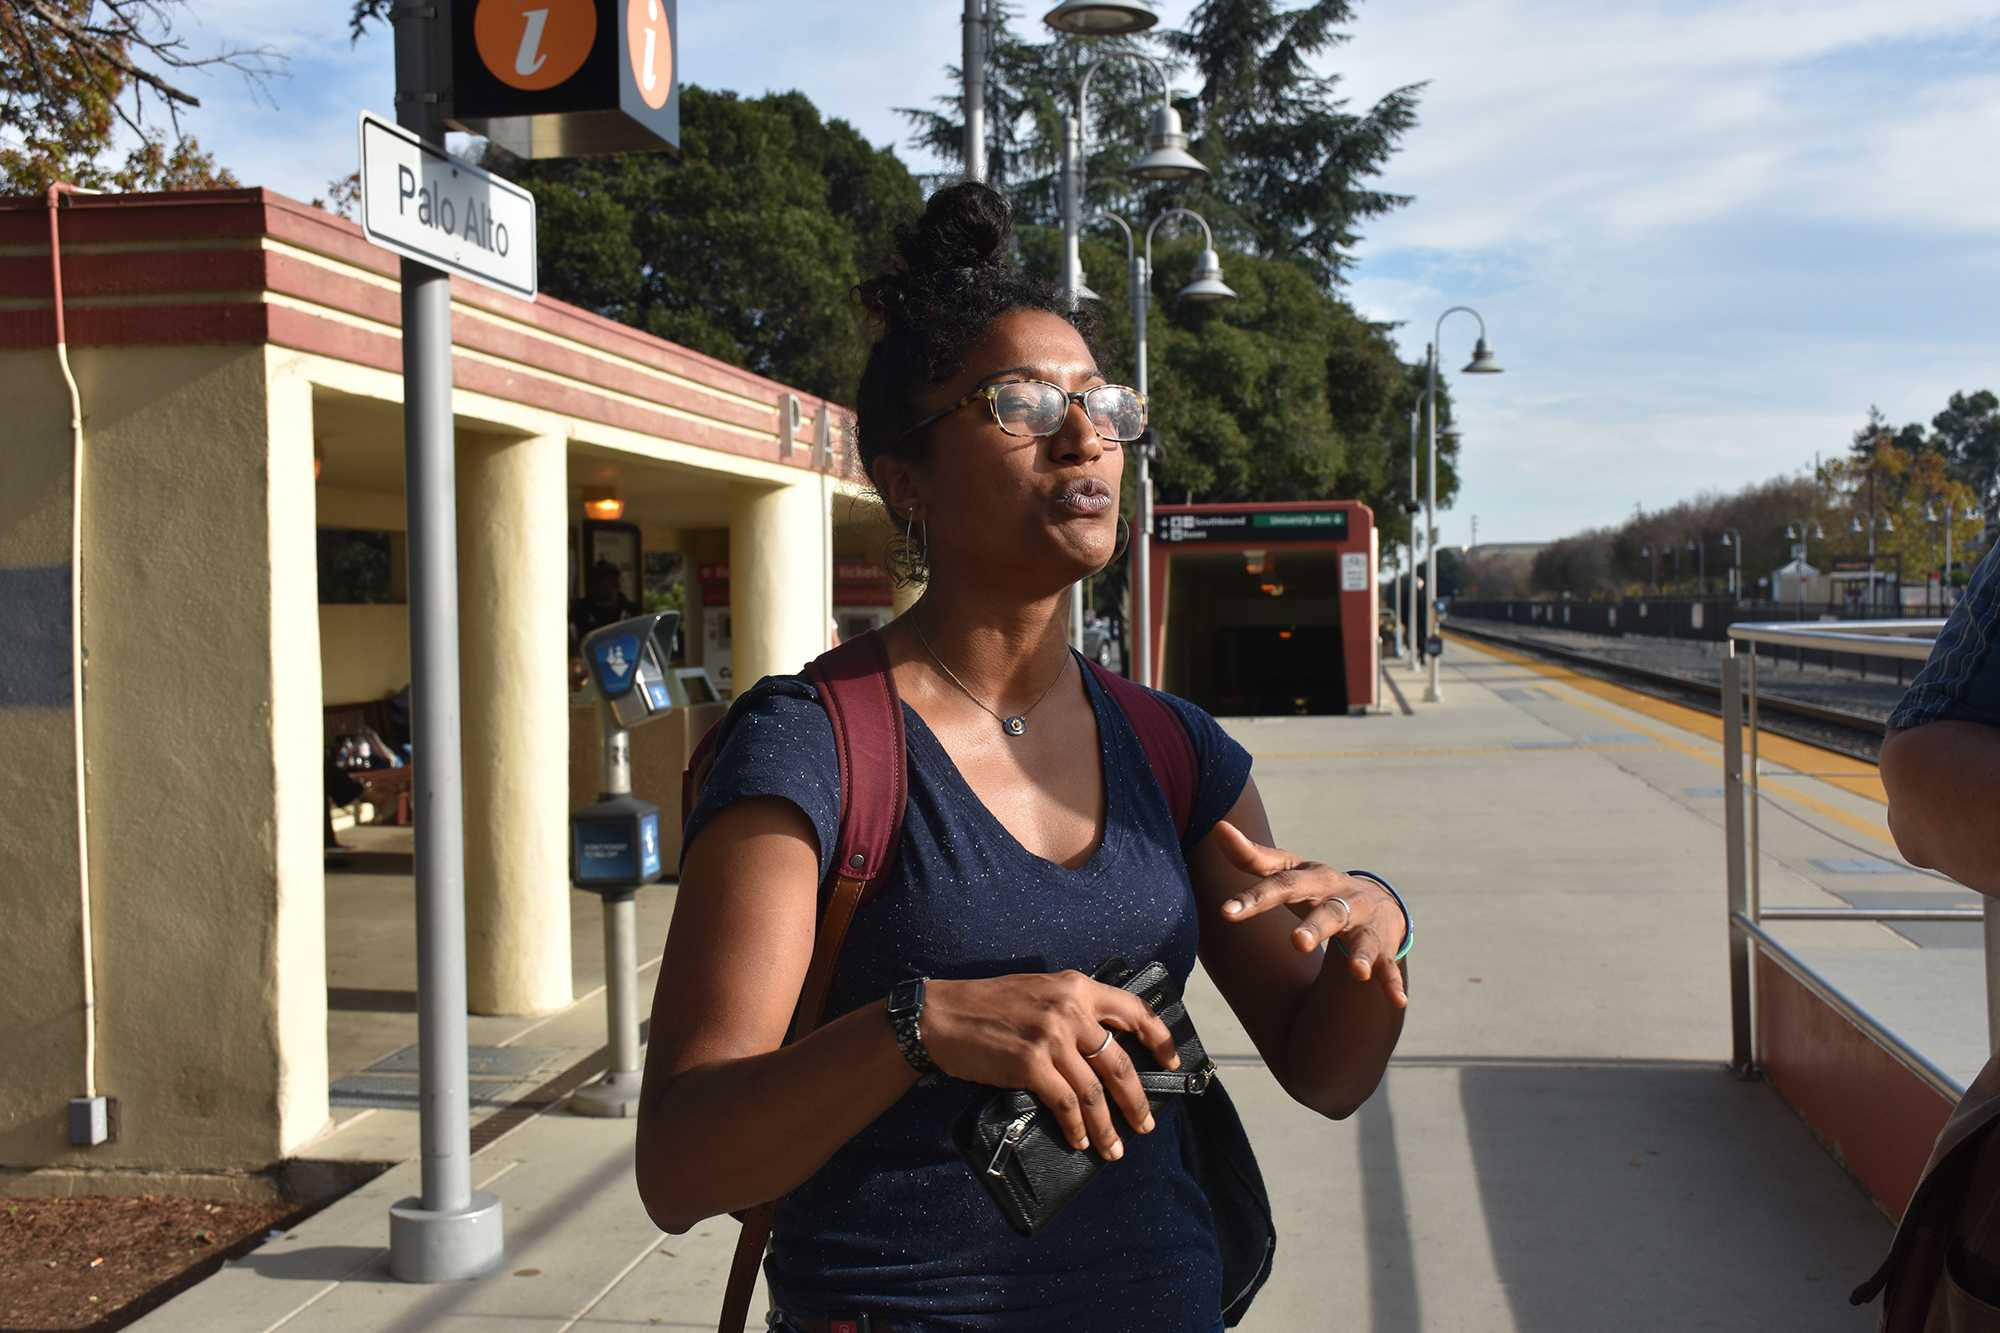 """Kahrson gestures enthusiastically as she declares her love for public transportation. """"I love eavesdropping on people's conversations on the train,"""" Kahrson says."""